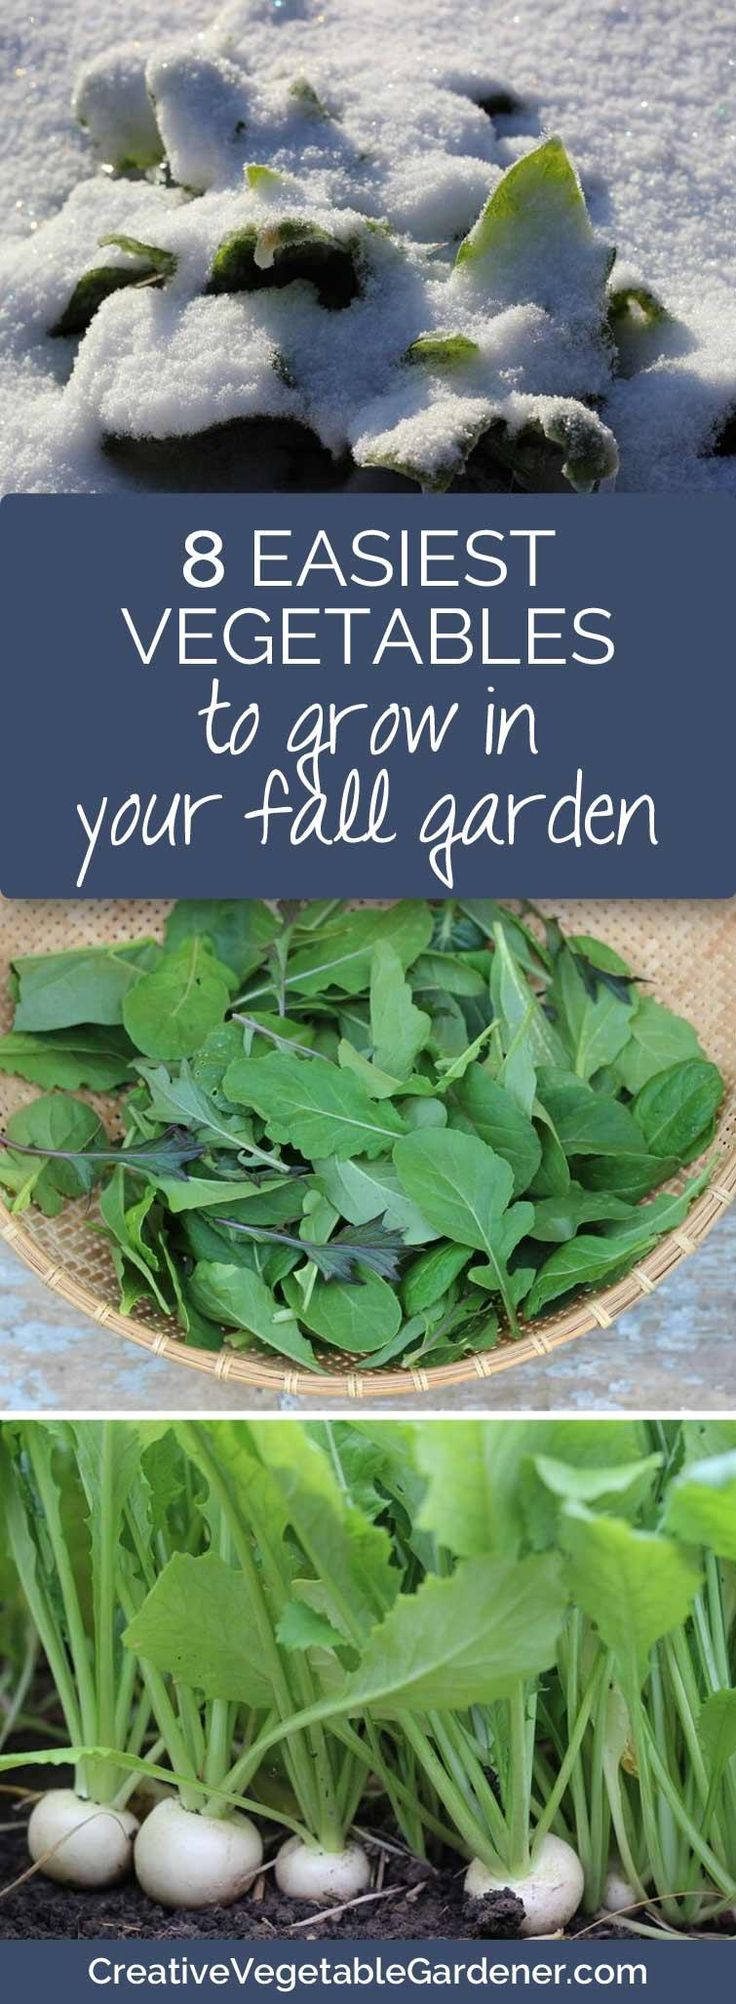 8 Easy Vegetables To Grow For Big Fall Harvests